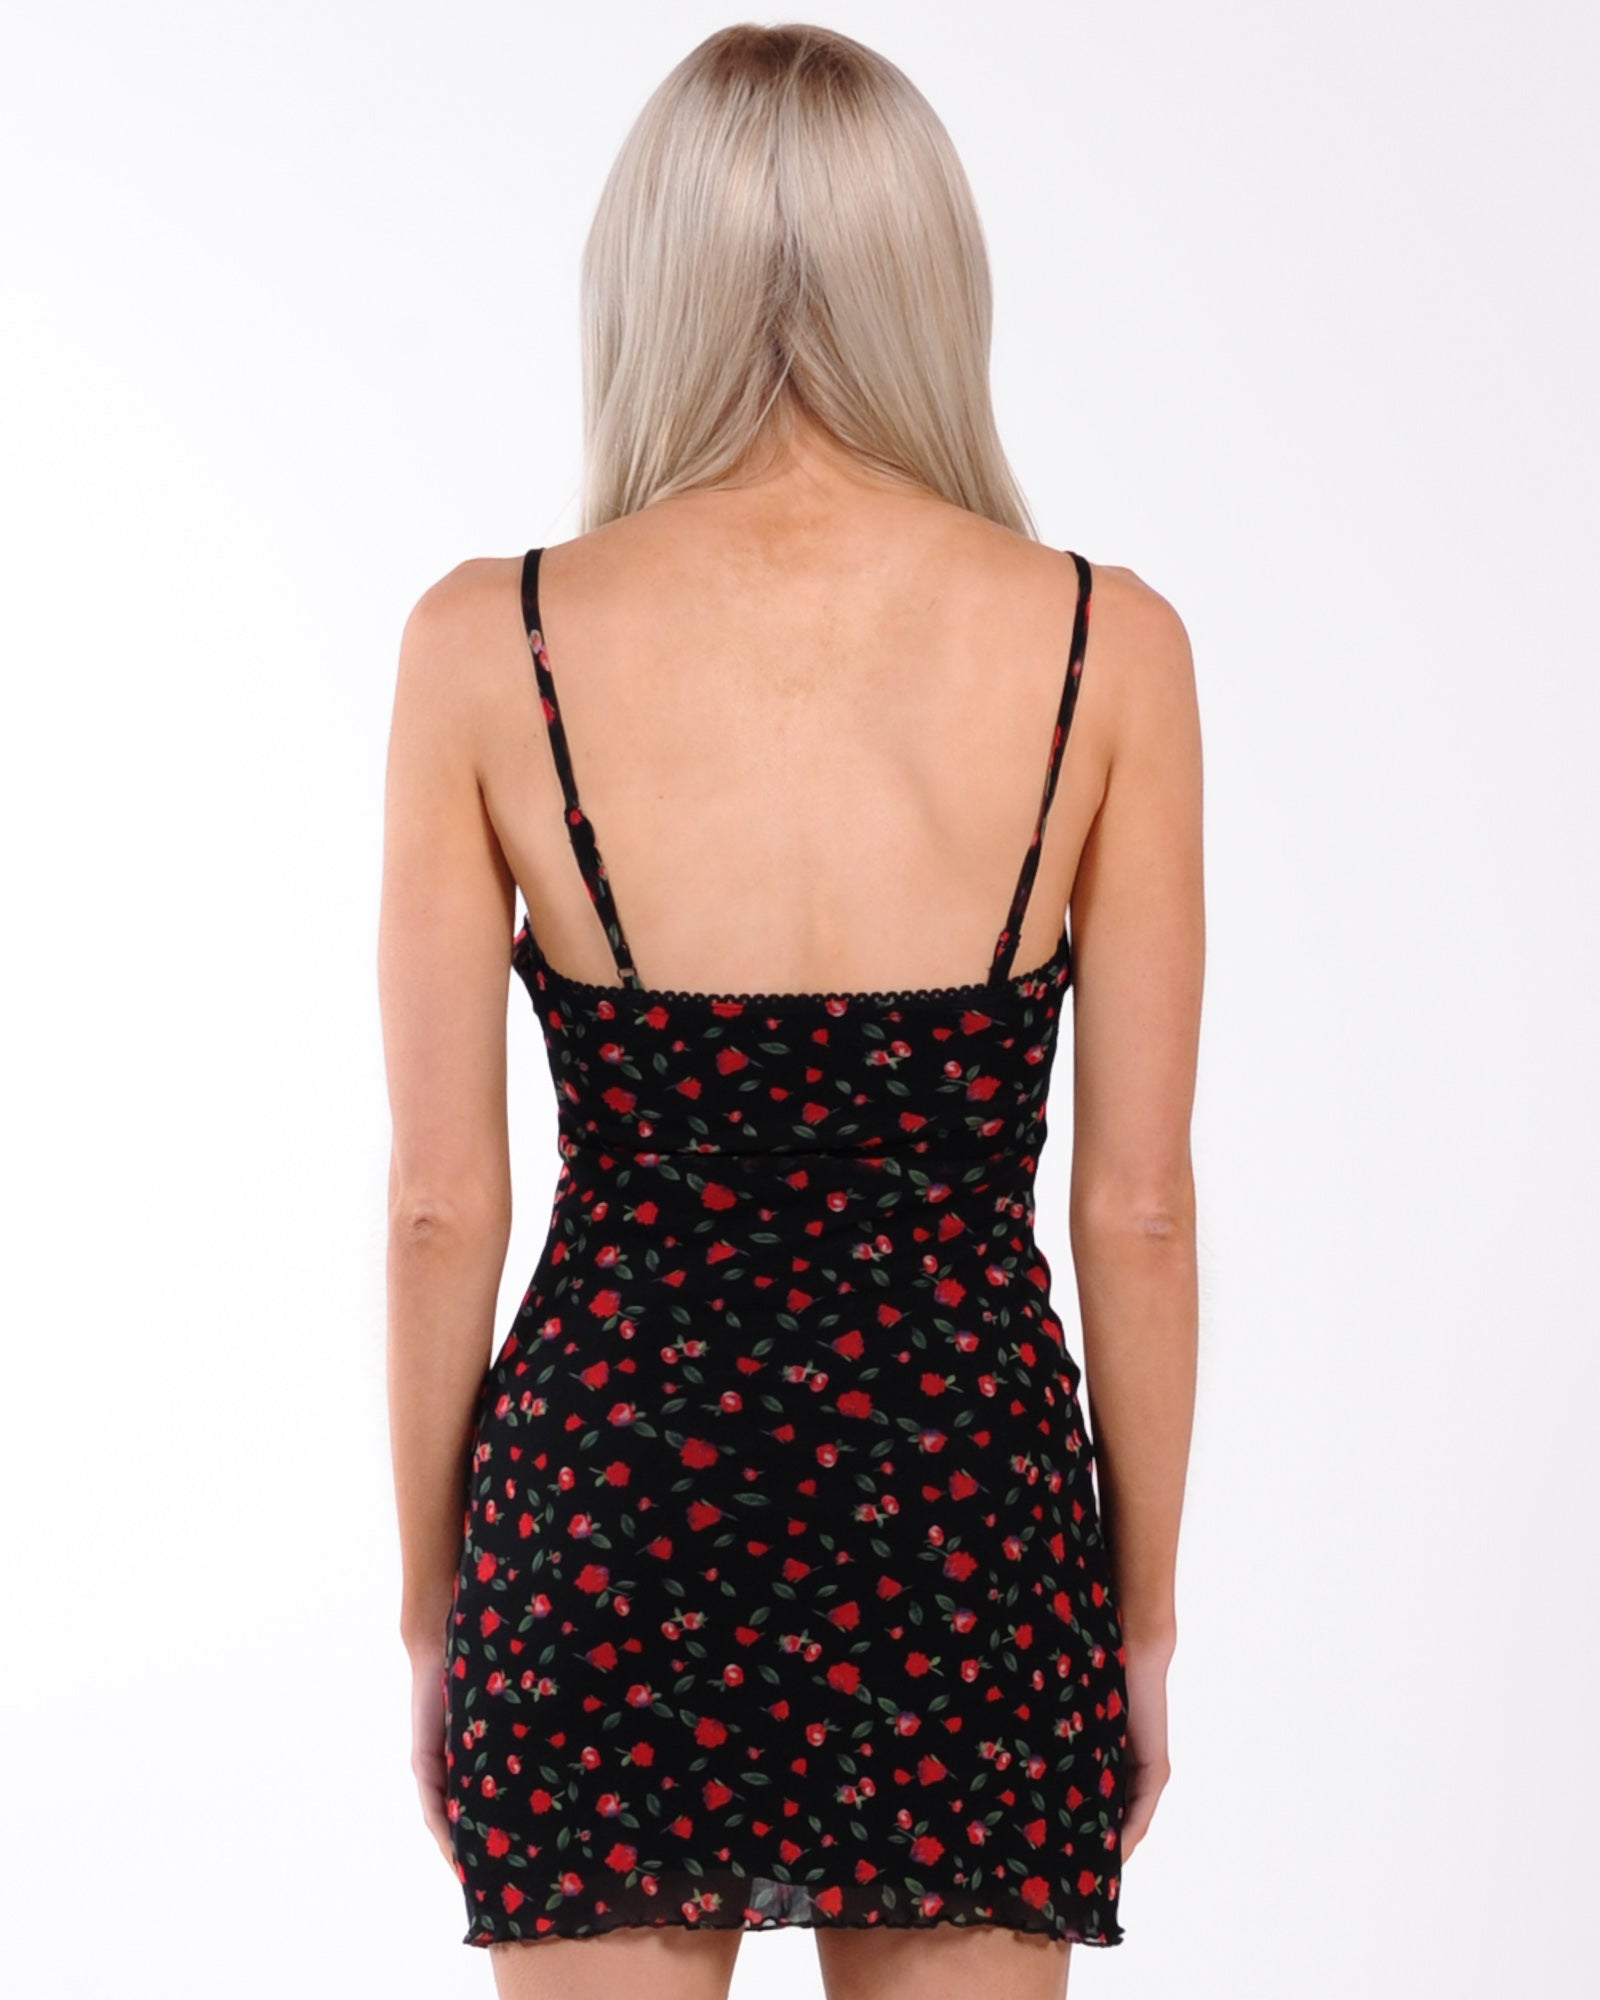 Heart Breaker Floral Dress - Red Floral